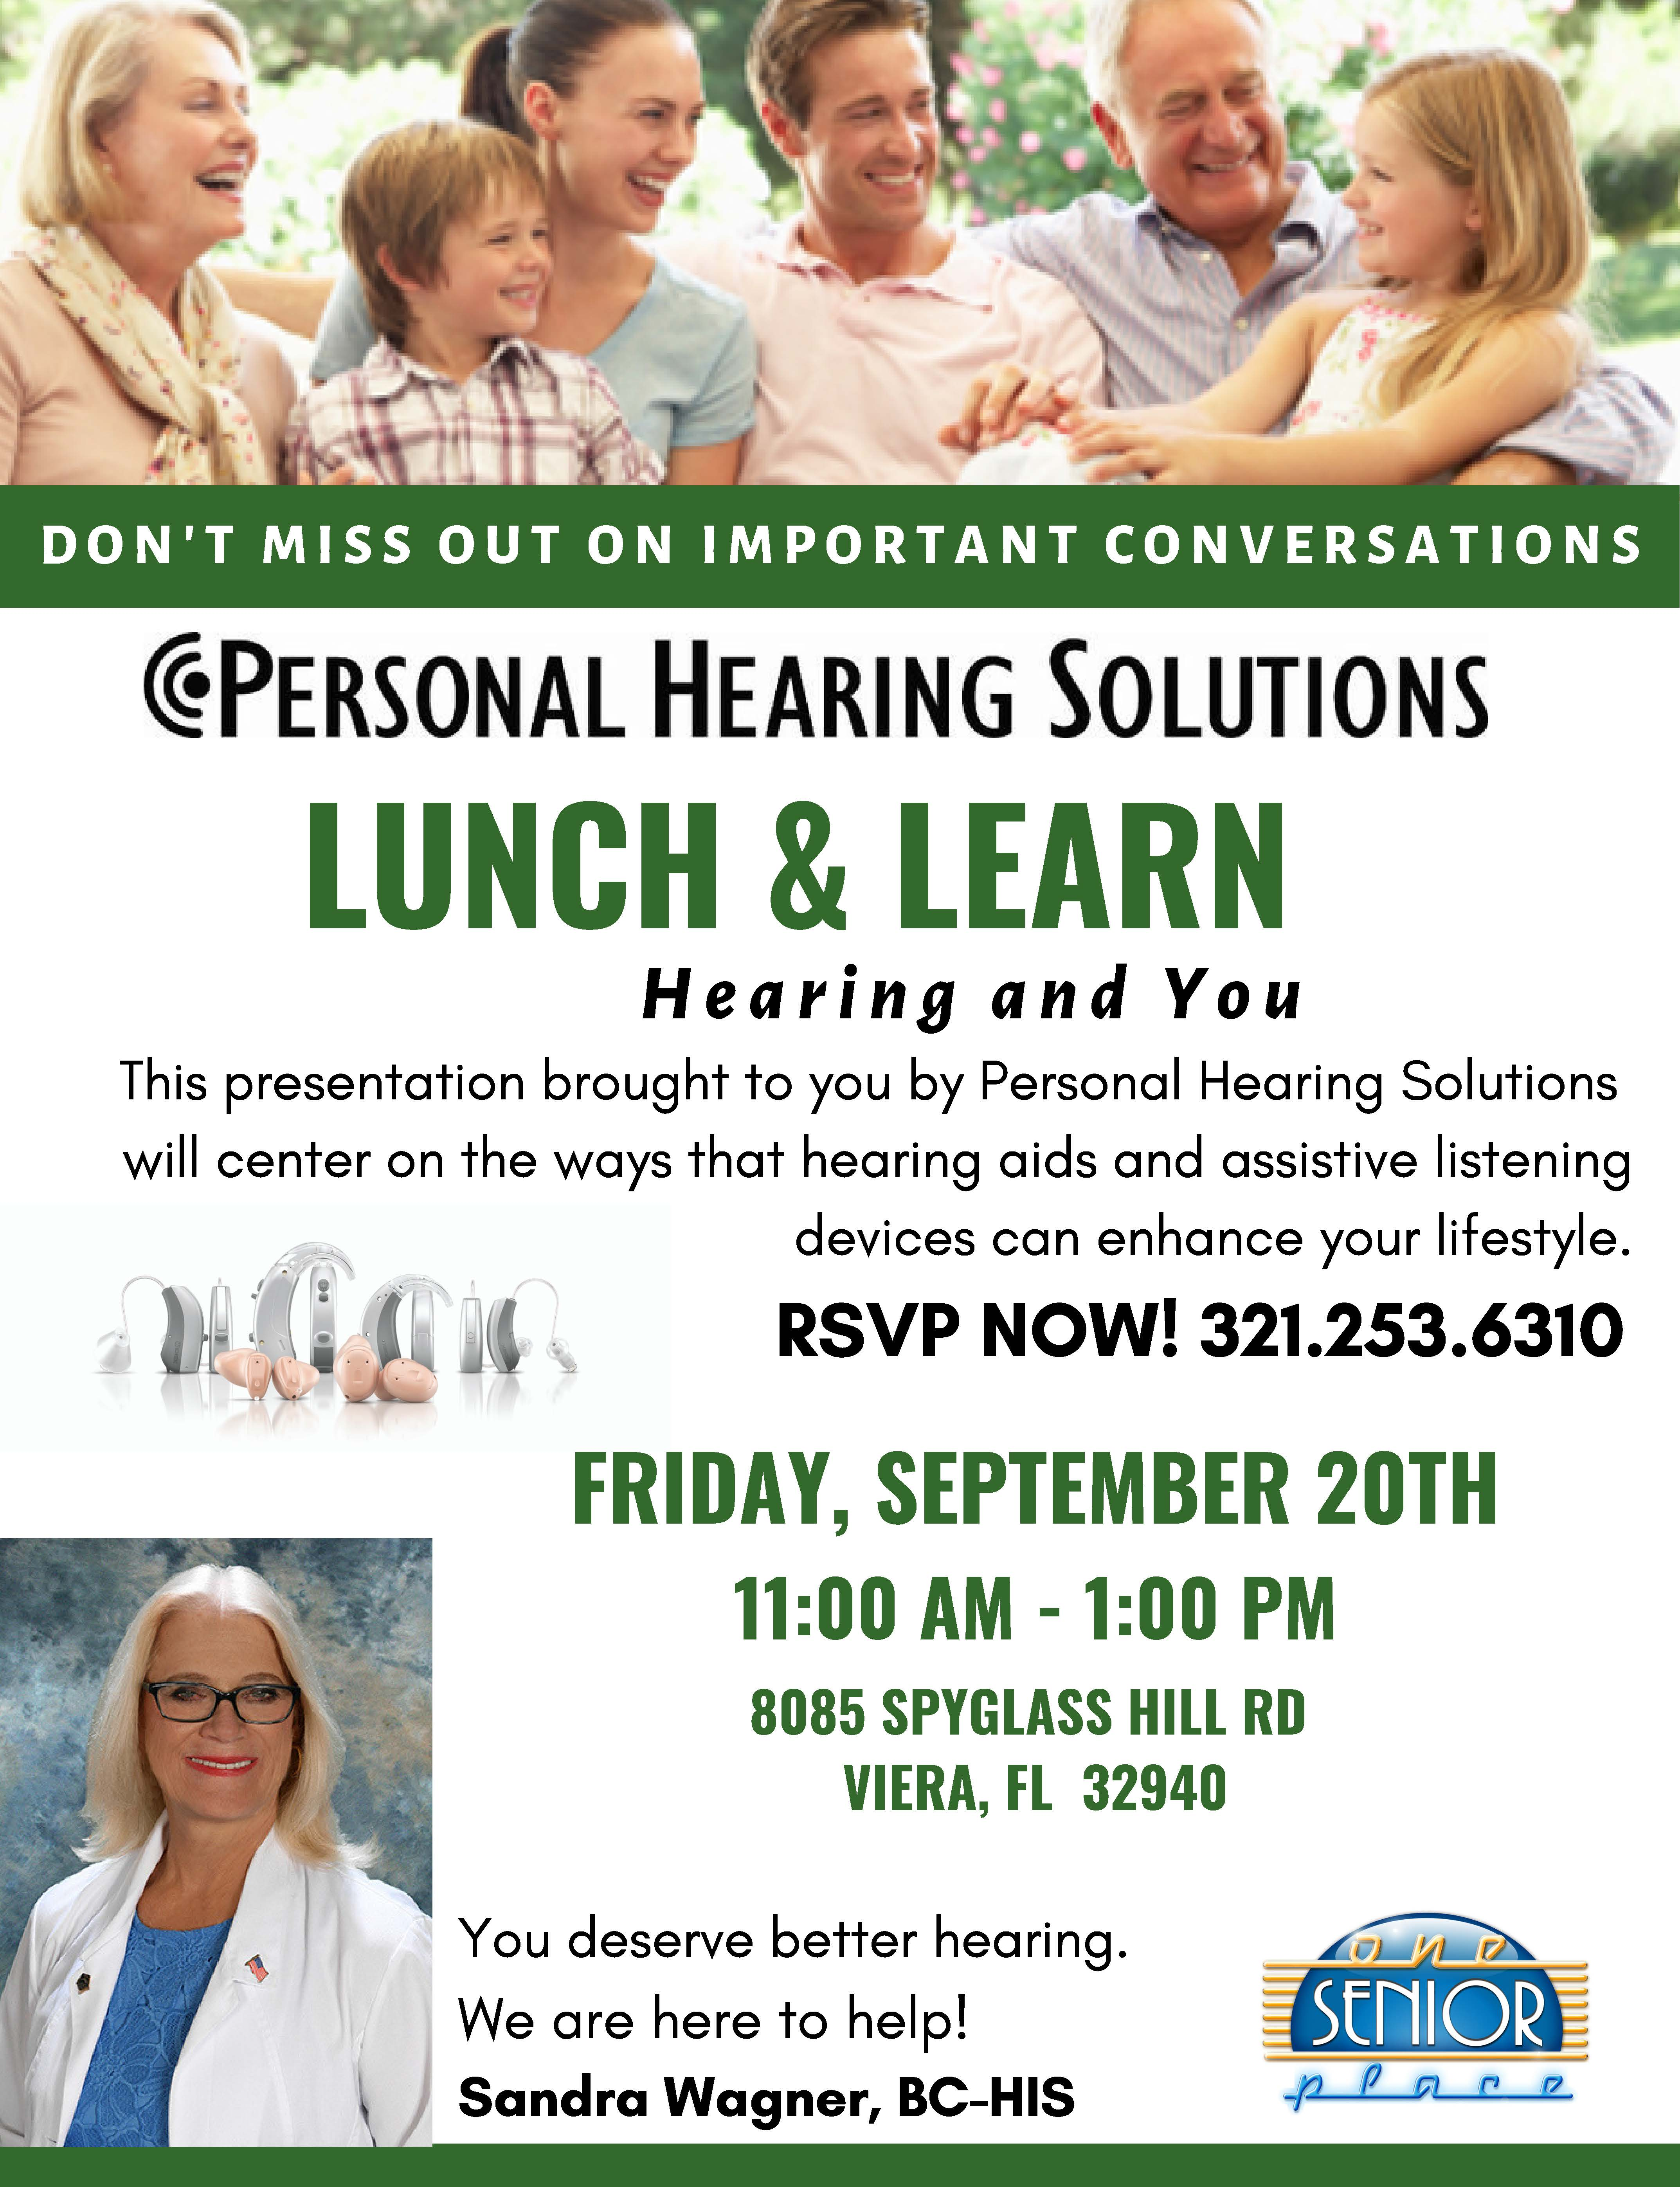 Hearing and You, Lunch and Learn Seminar presented by Personal Hearing Solutions